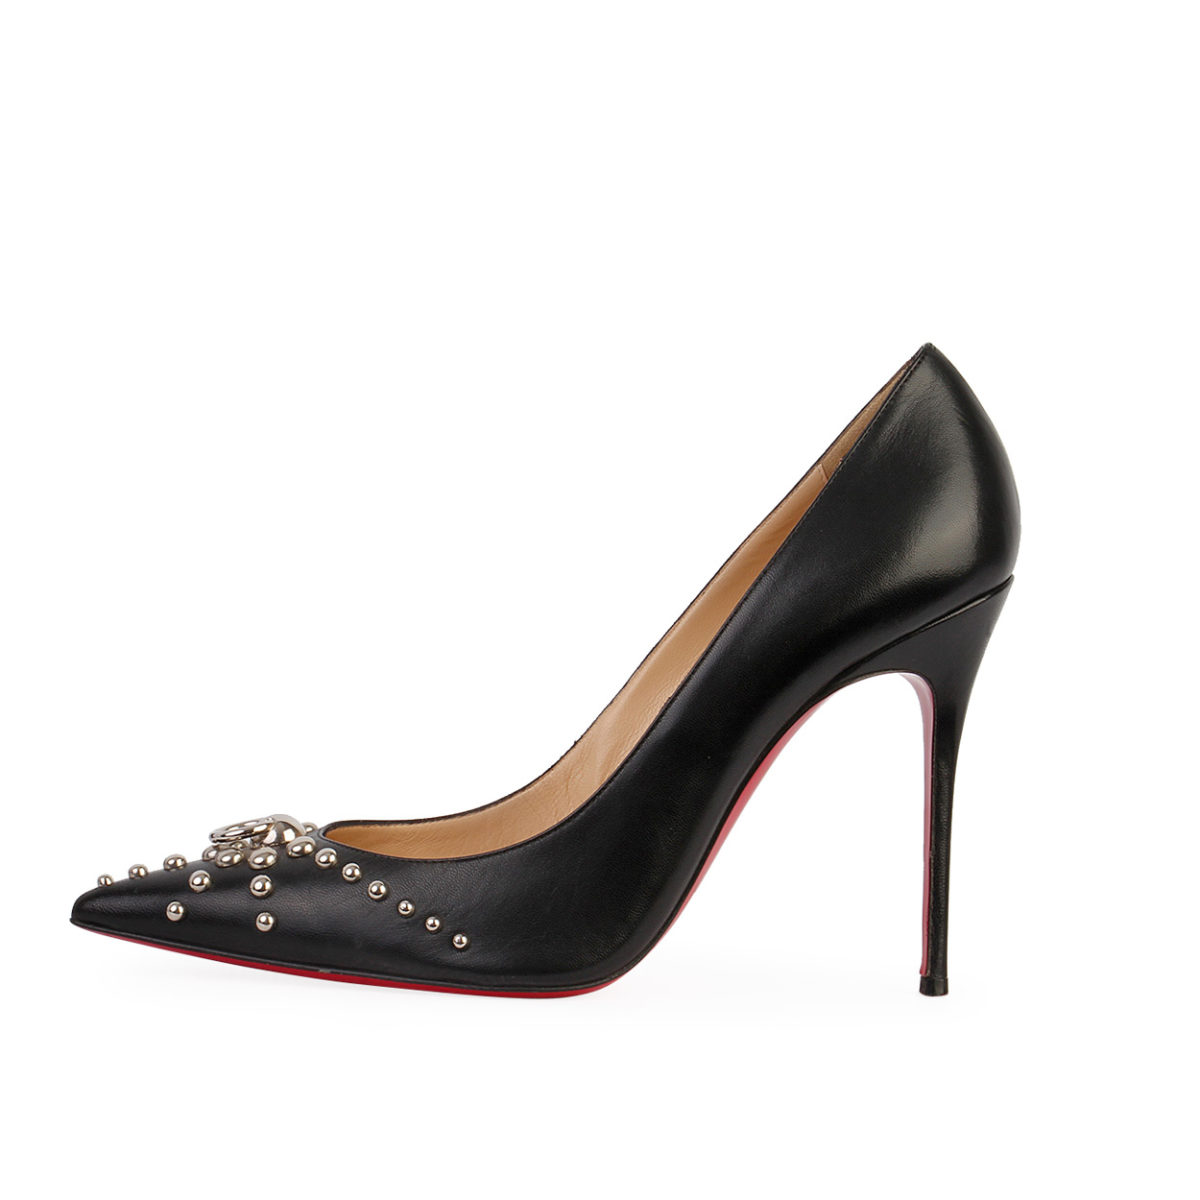 info for 9fe4f 3d707 CHRISTIAN LOUBOUTIN Leather Studded Door Knock Pumps Black - S: 39 (6)